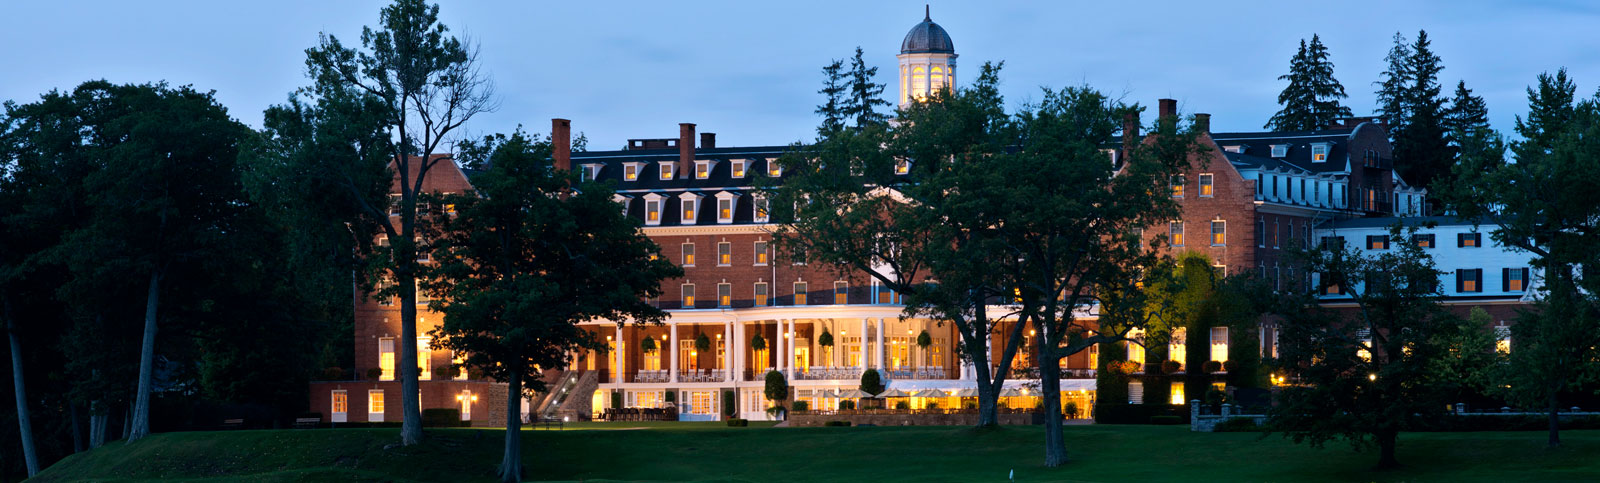 the-otesaga-resort-hotel-cooperstown.jpg